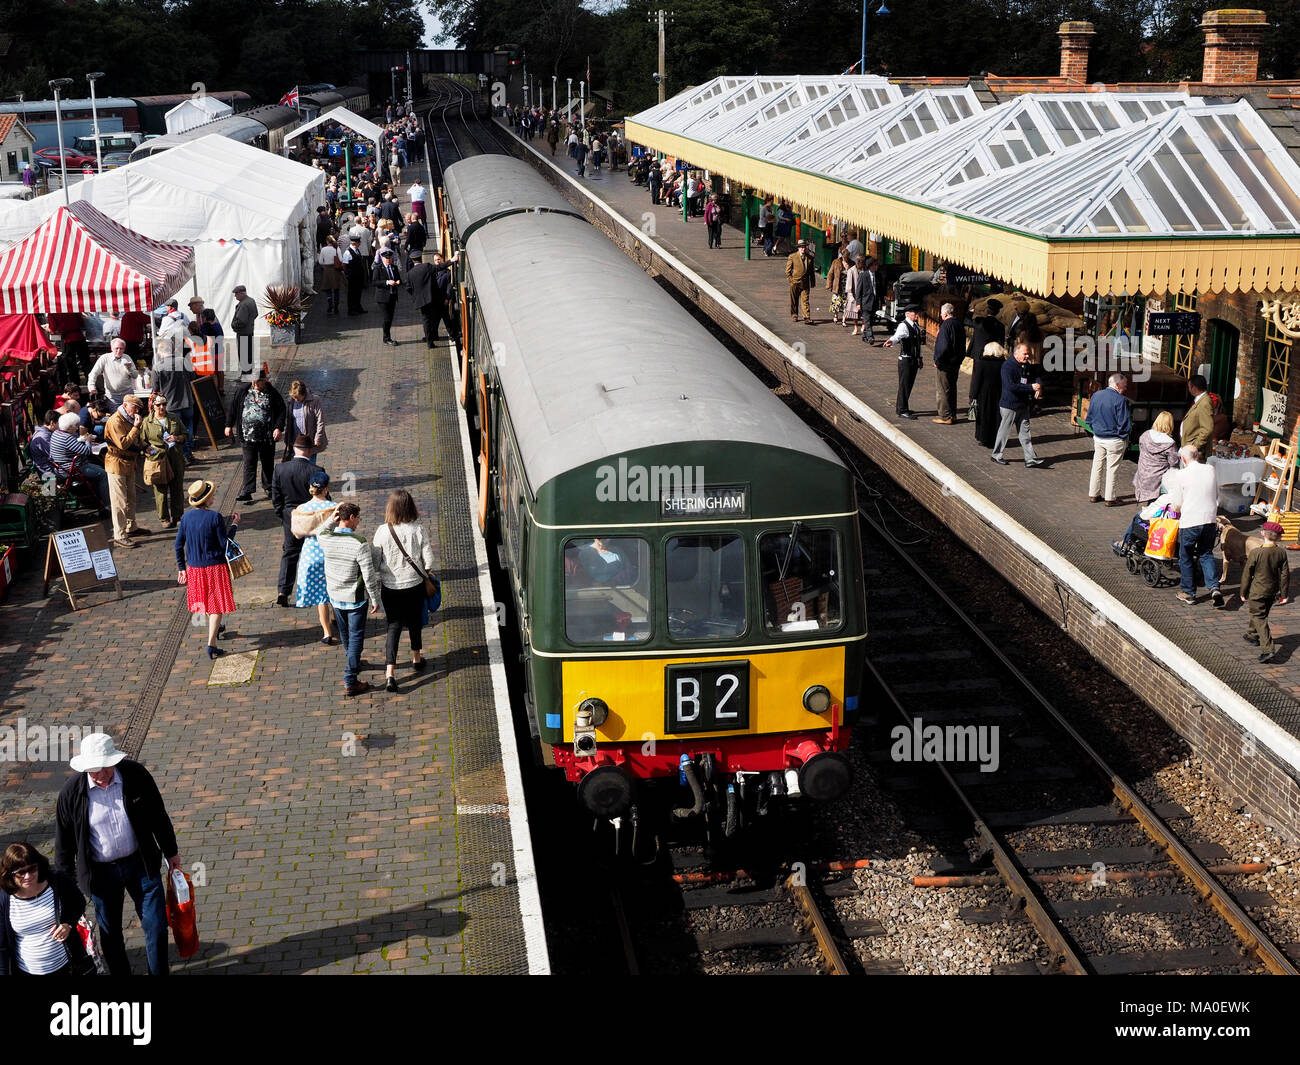 Railway Staion Stock Photos & Railway Staion Stock Images